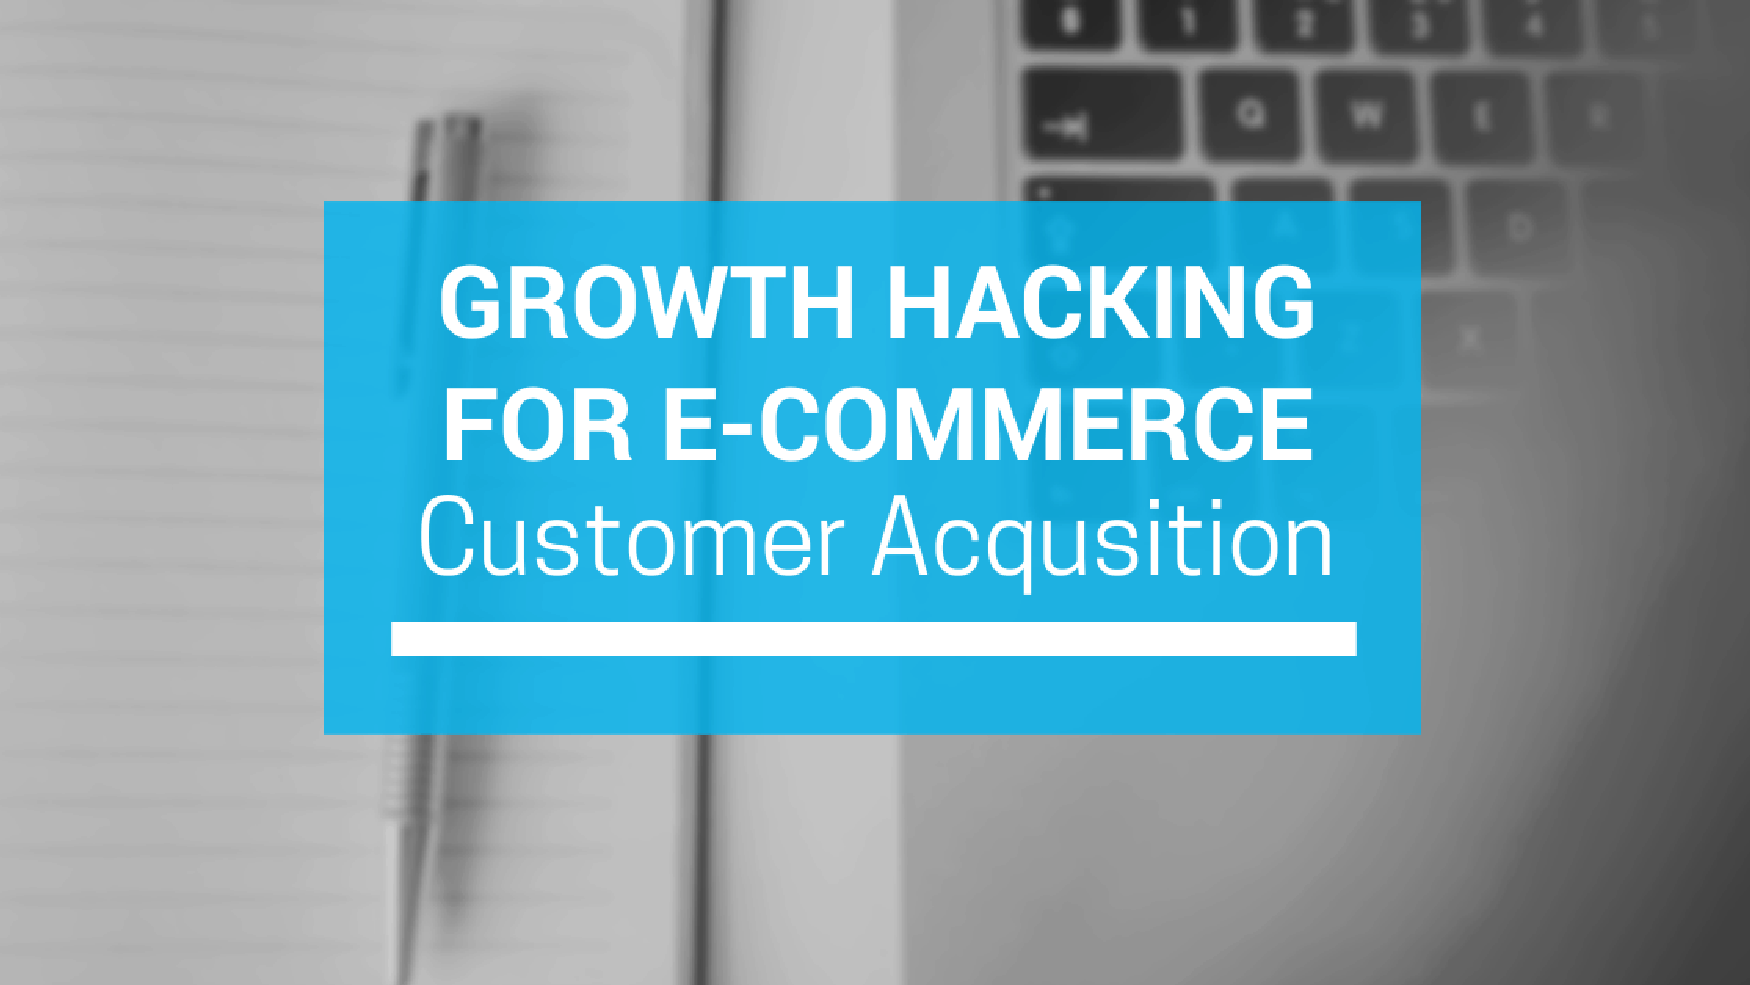 Growth Hacking for E-commerce: 5 Tactics to Grow Your Store